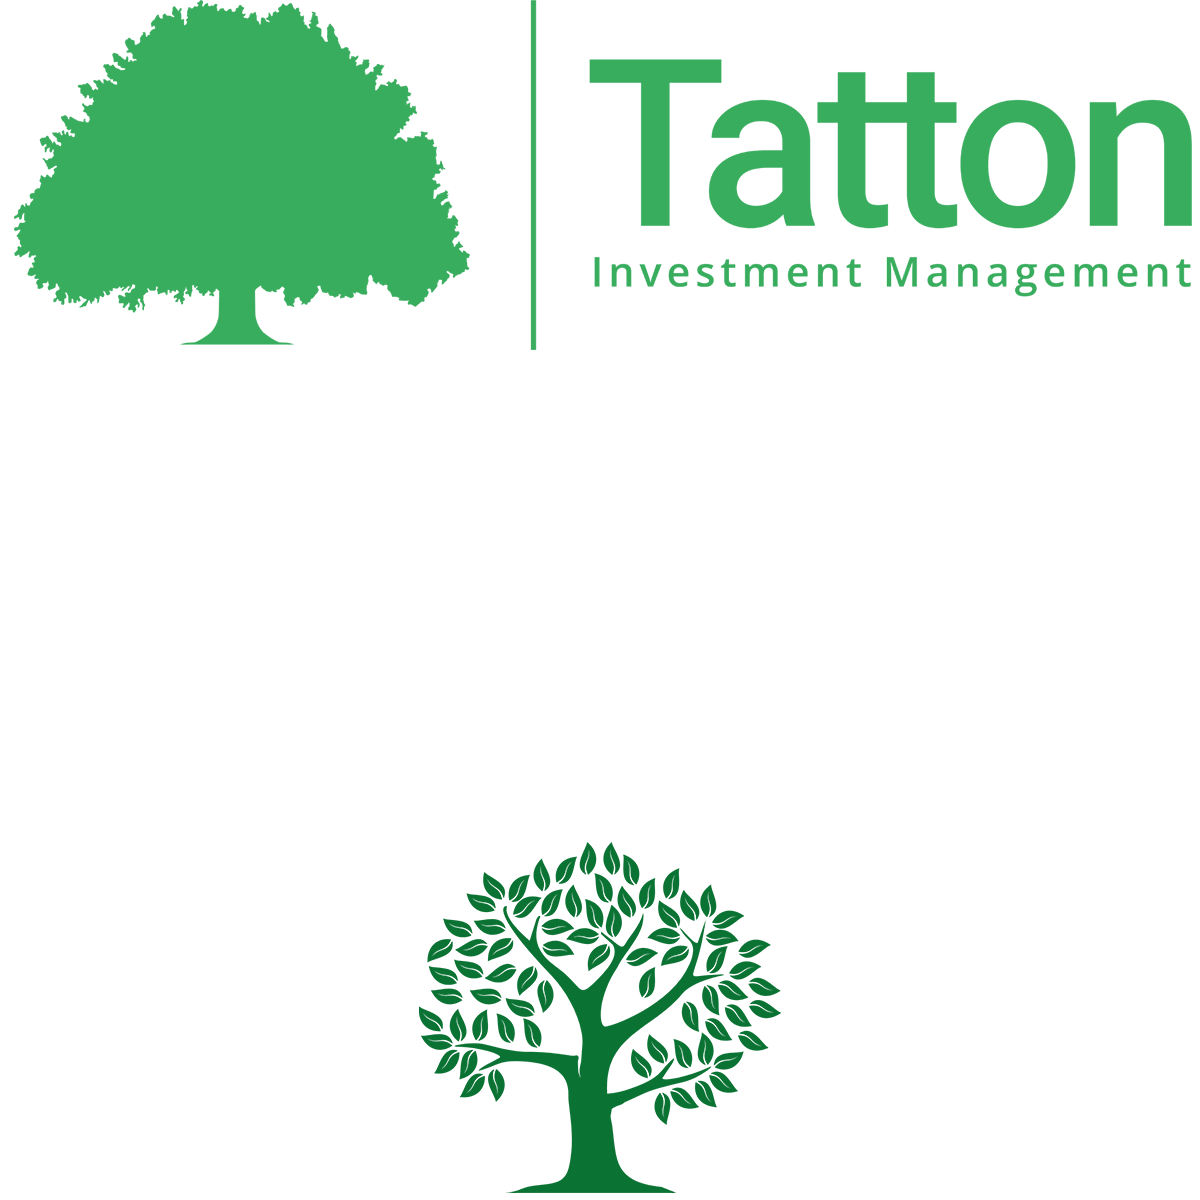 Tatton Investment Management Limited